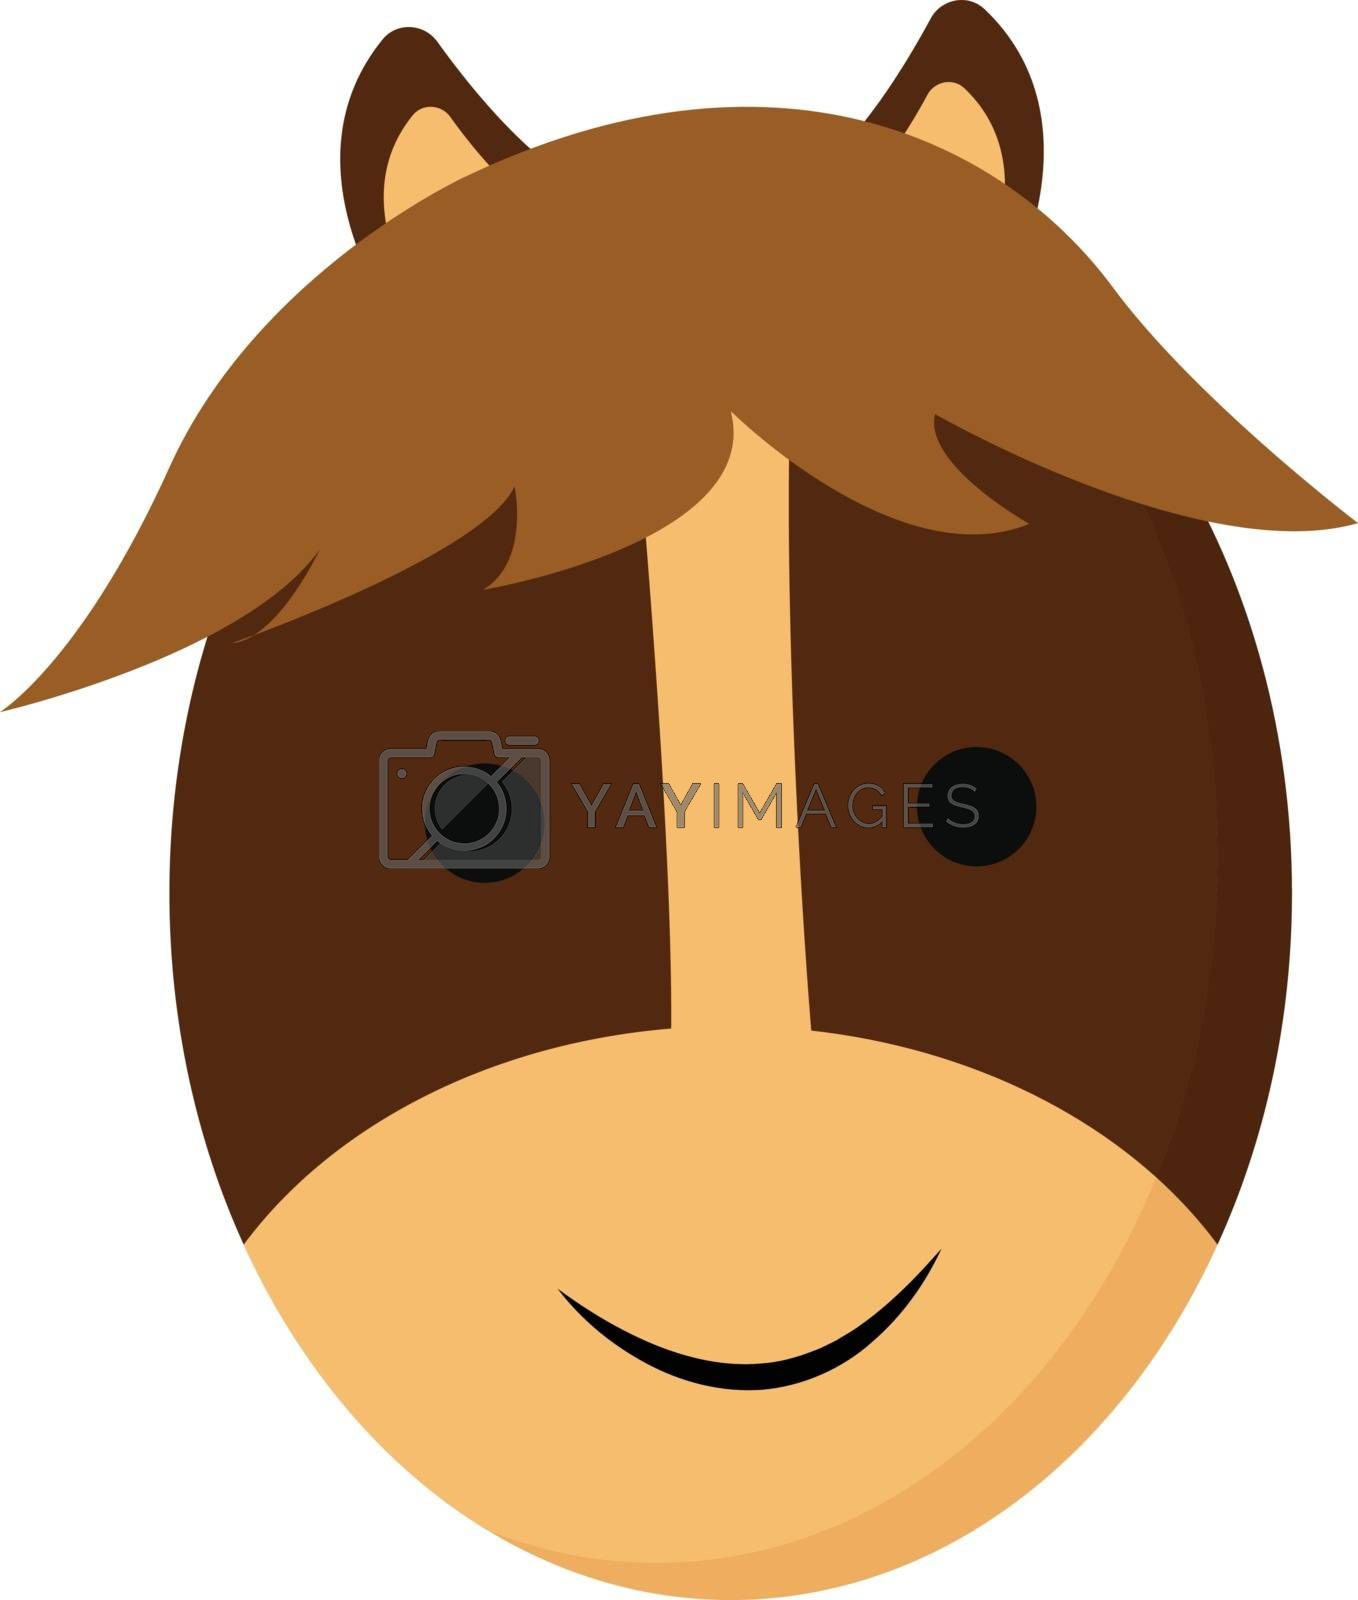 Royalty free image of Cartoon smiling face of a brown horse vector or color illustrati by Morphart